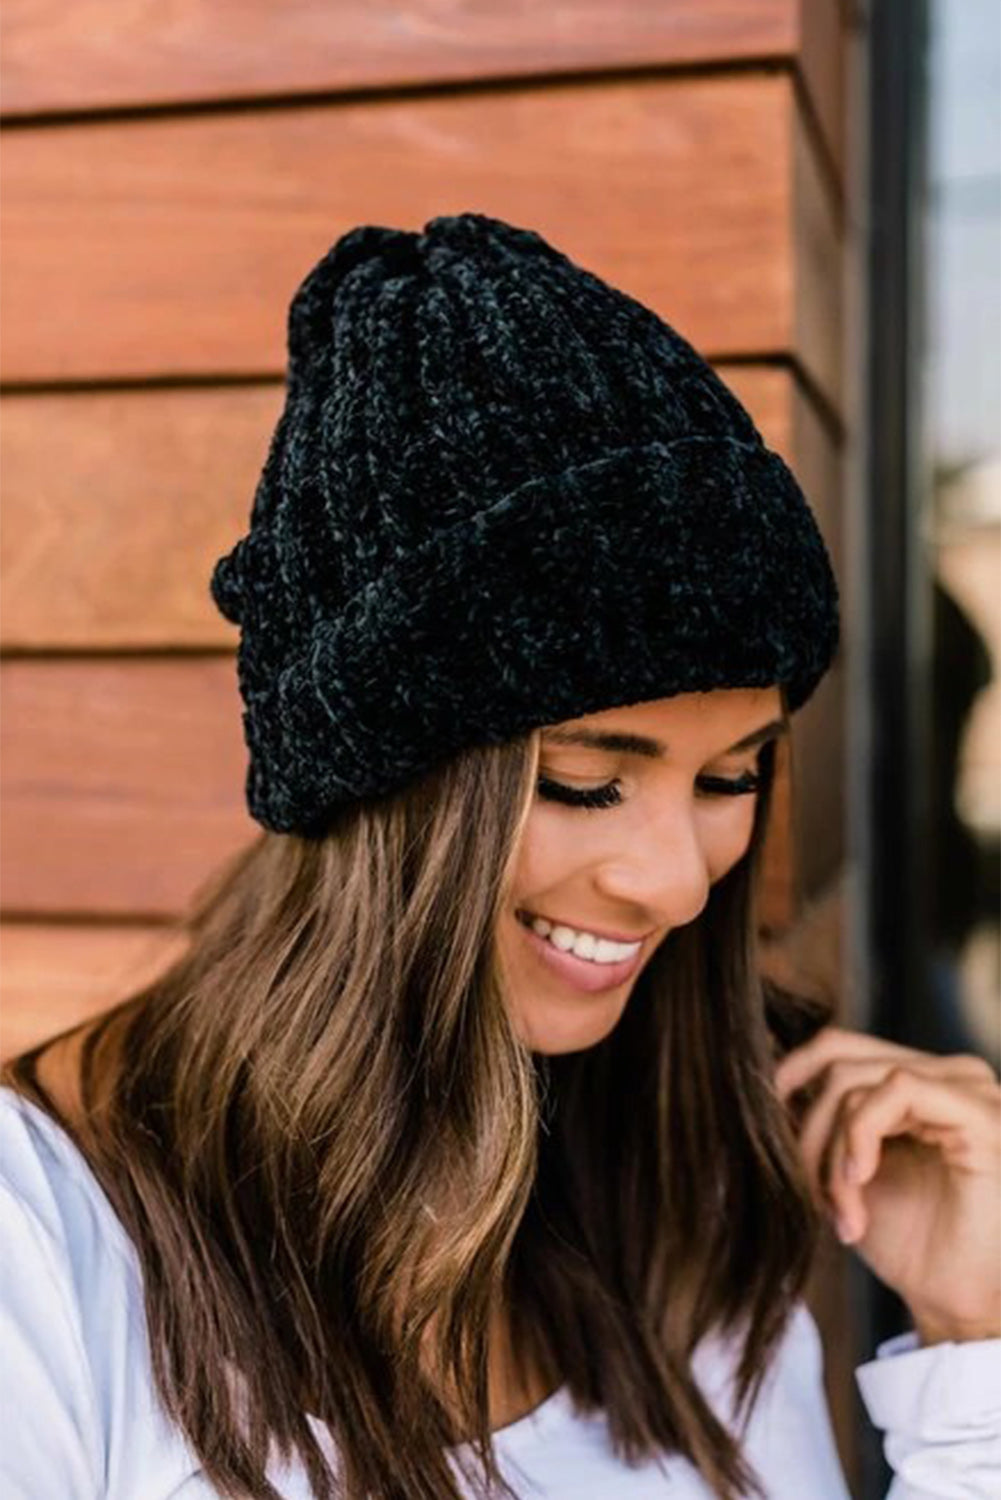 Black Chenille Beanie Hats & Caps Discount Designer Fashion Clothes Shoes Bags Women Men Kids Children Black Owned Business